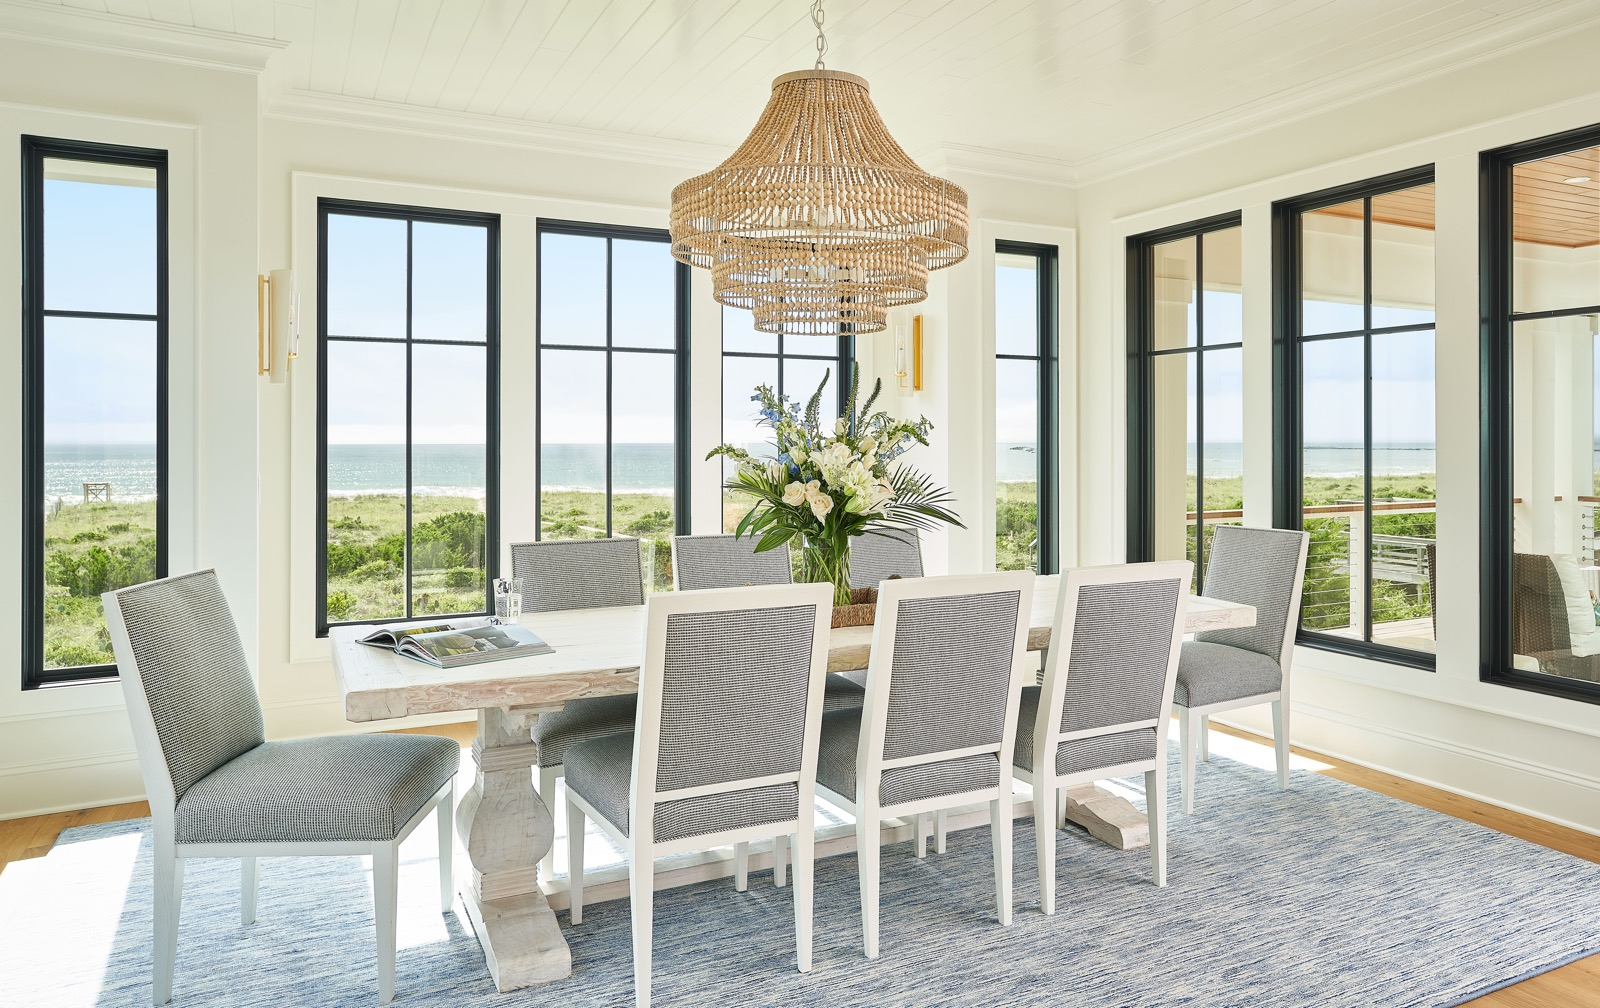 Photo showing interior design for S Lumina project